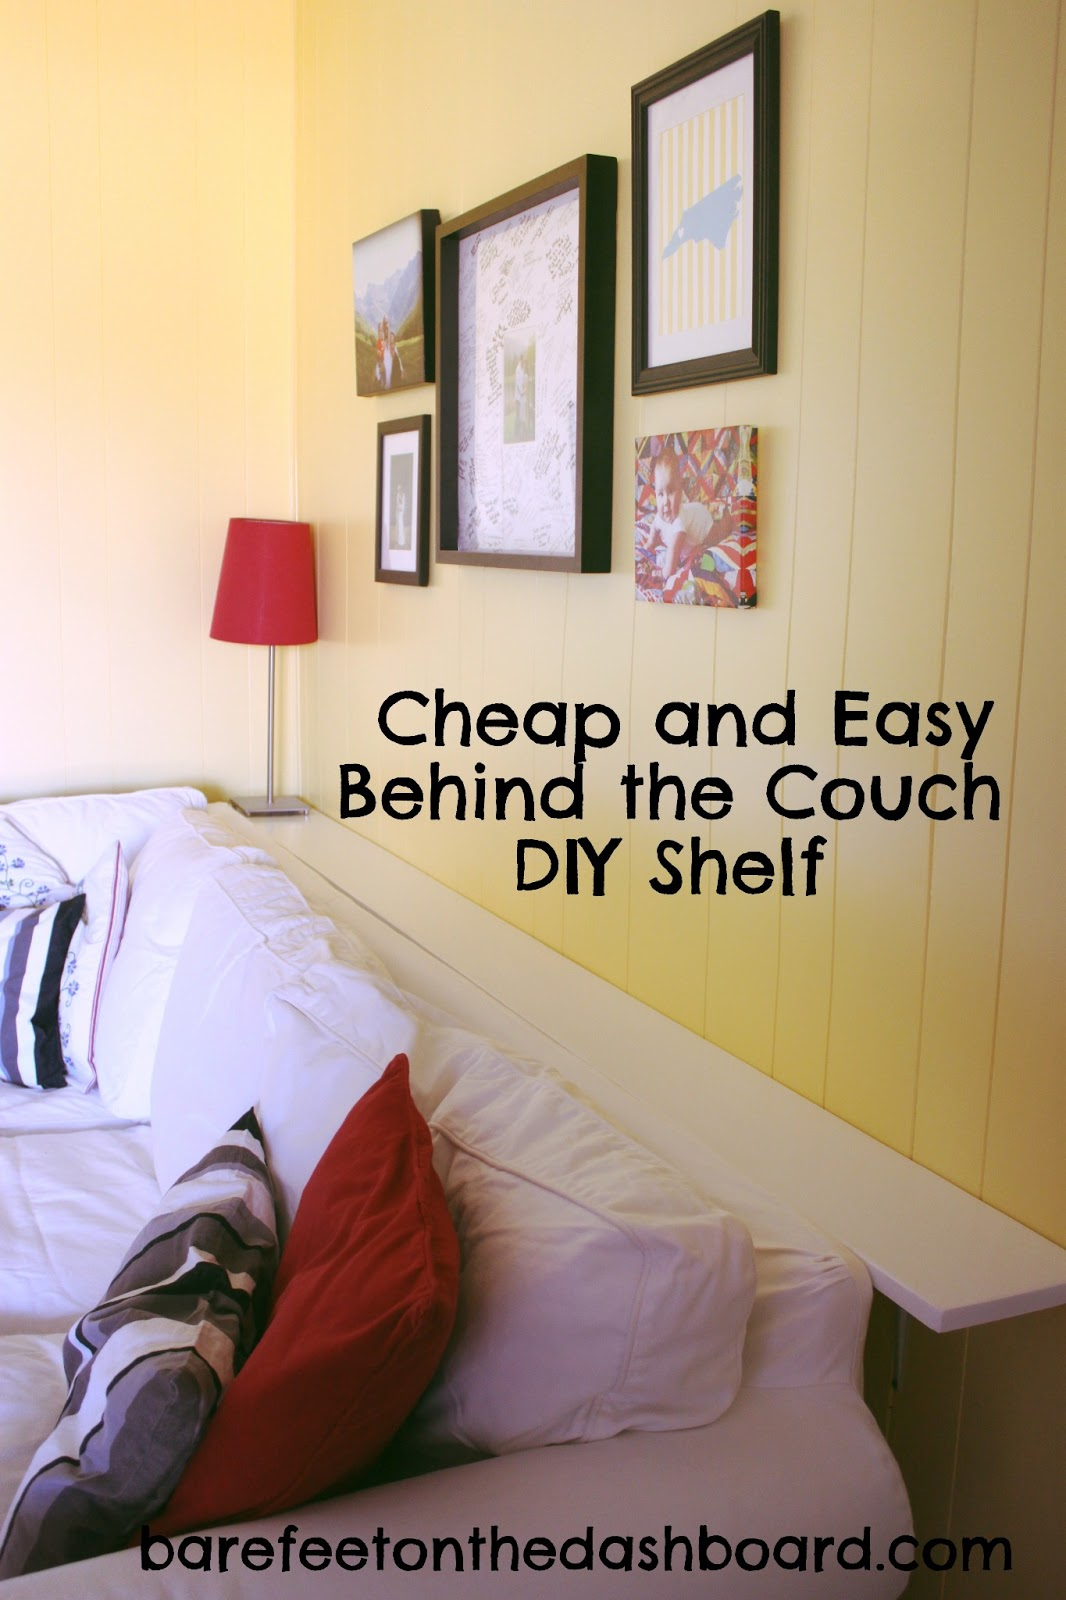 duck creek diy and easy but sturdy behind the couch shelf behindthecouchshelf floating shelves sofa fireplace mantel with bookcases open bathroom storage quick hangers deep wall